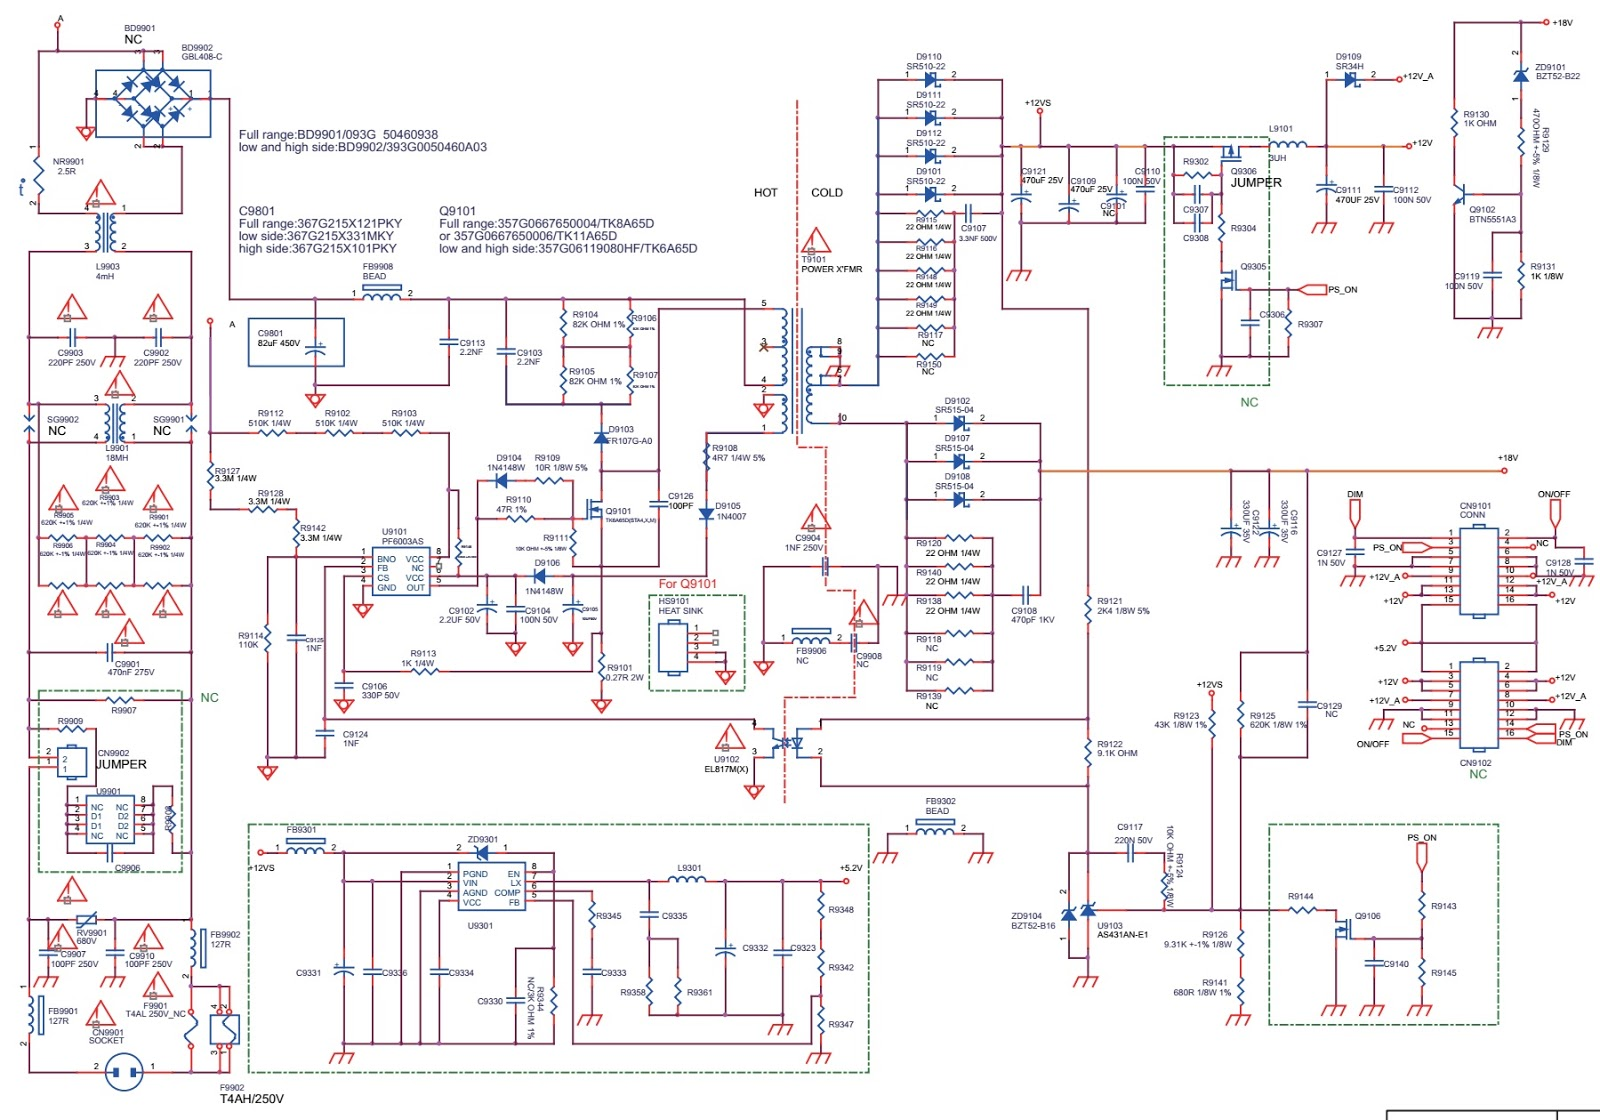 Philips 40PFG5100-77 LED LCD TV –SMPS circuit diagram, Pin voltages ...